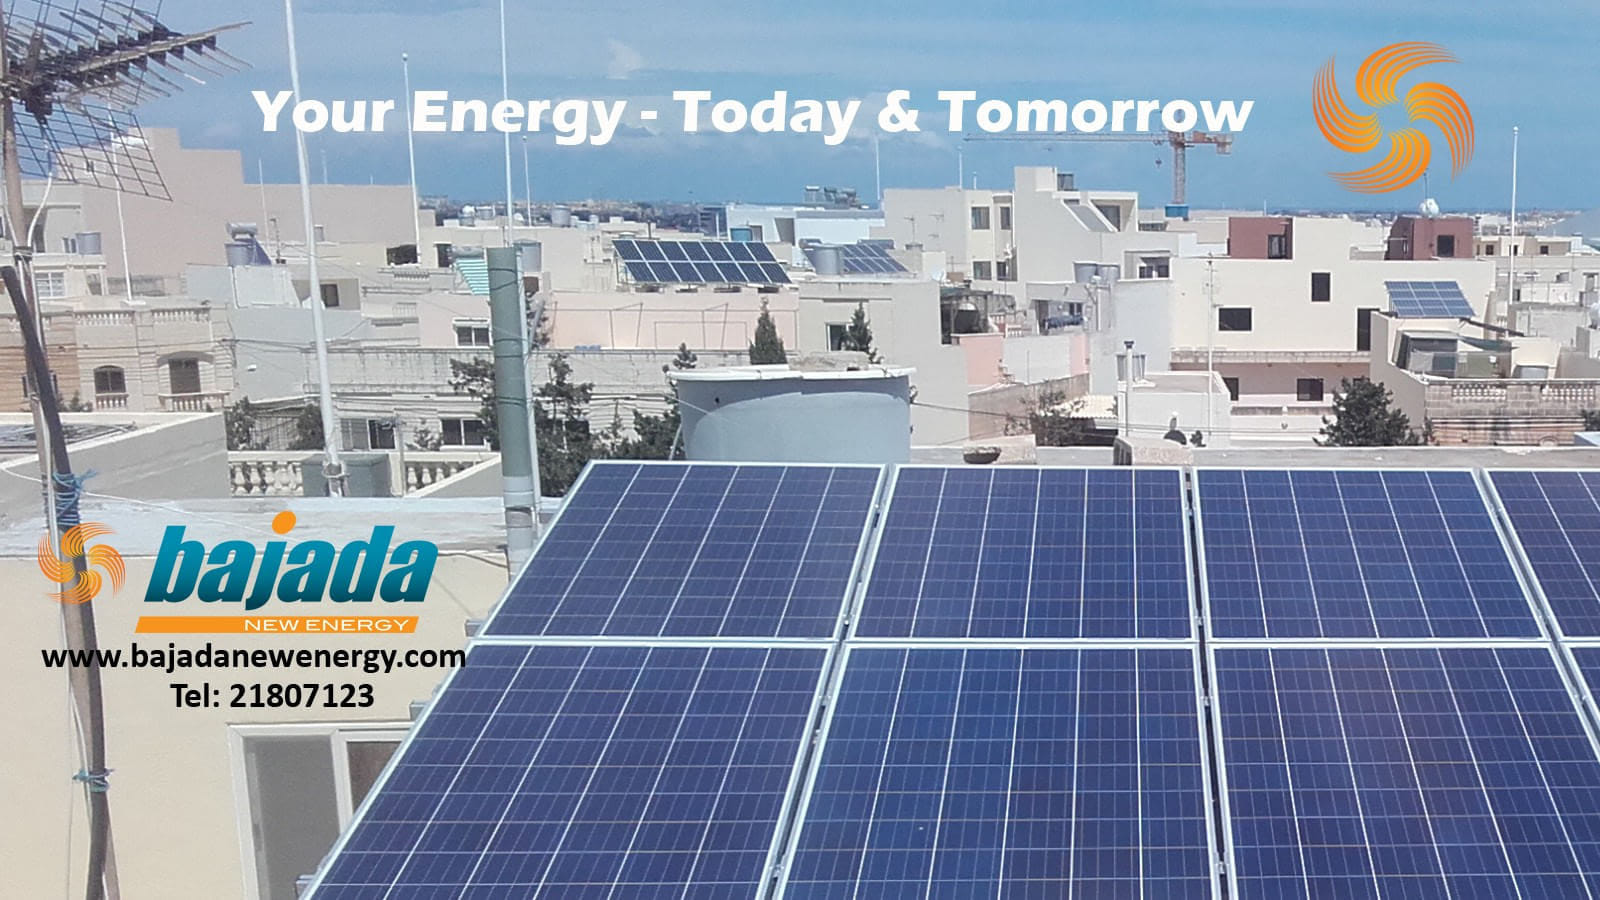 Bajada New Energy Ltd - Photovoltaic Systems in Marsa, Malta